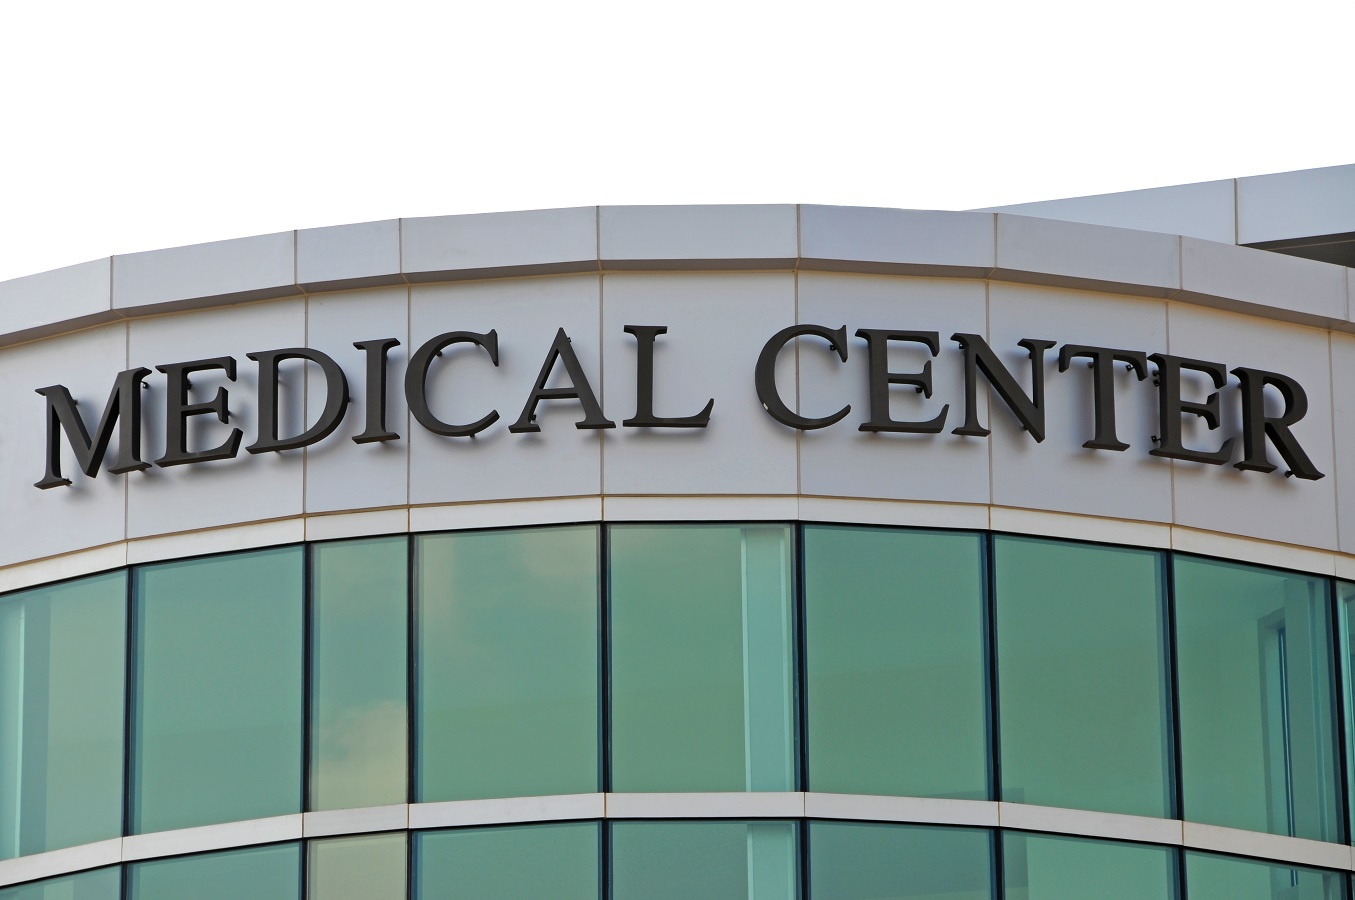 Top 7 Aesthetic Medicine Centers in the SF Bay Area